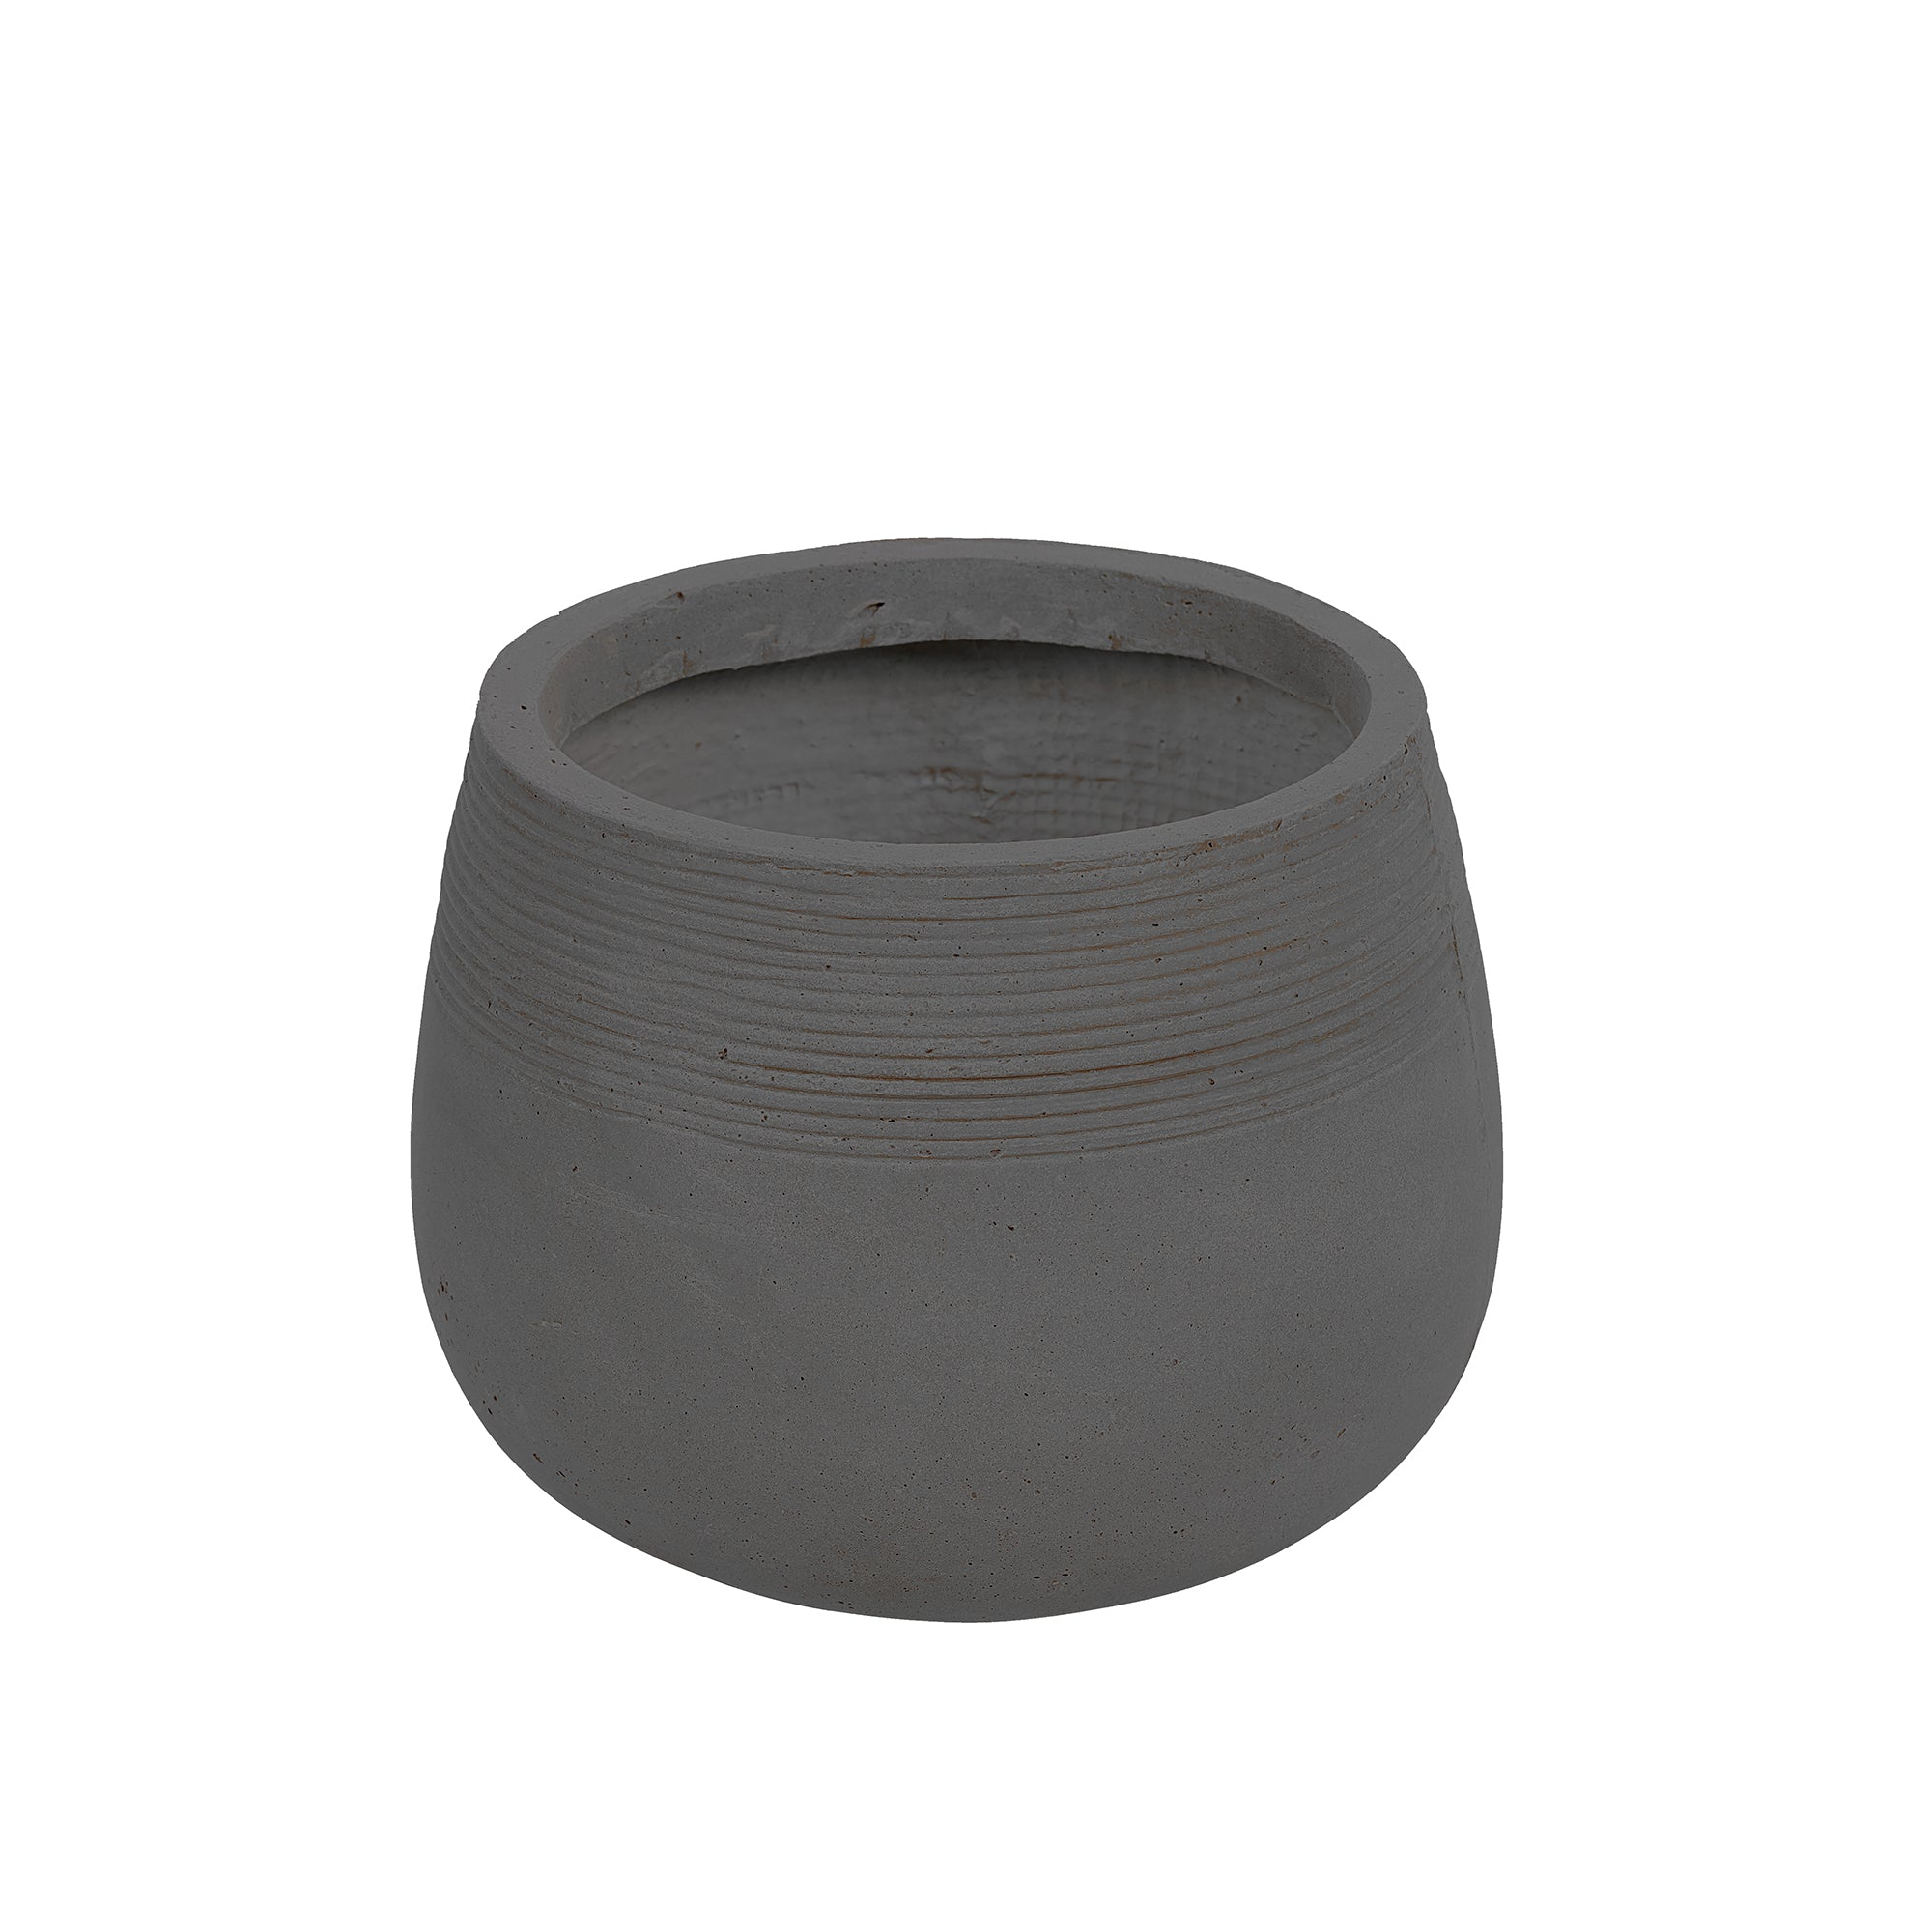 Contemporary round stonecast planter in charcoal